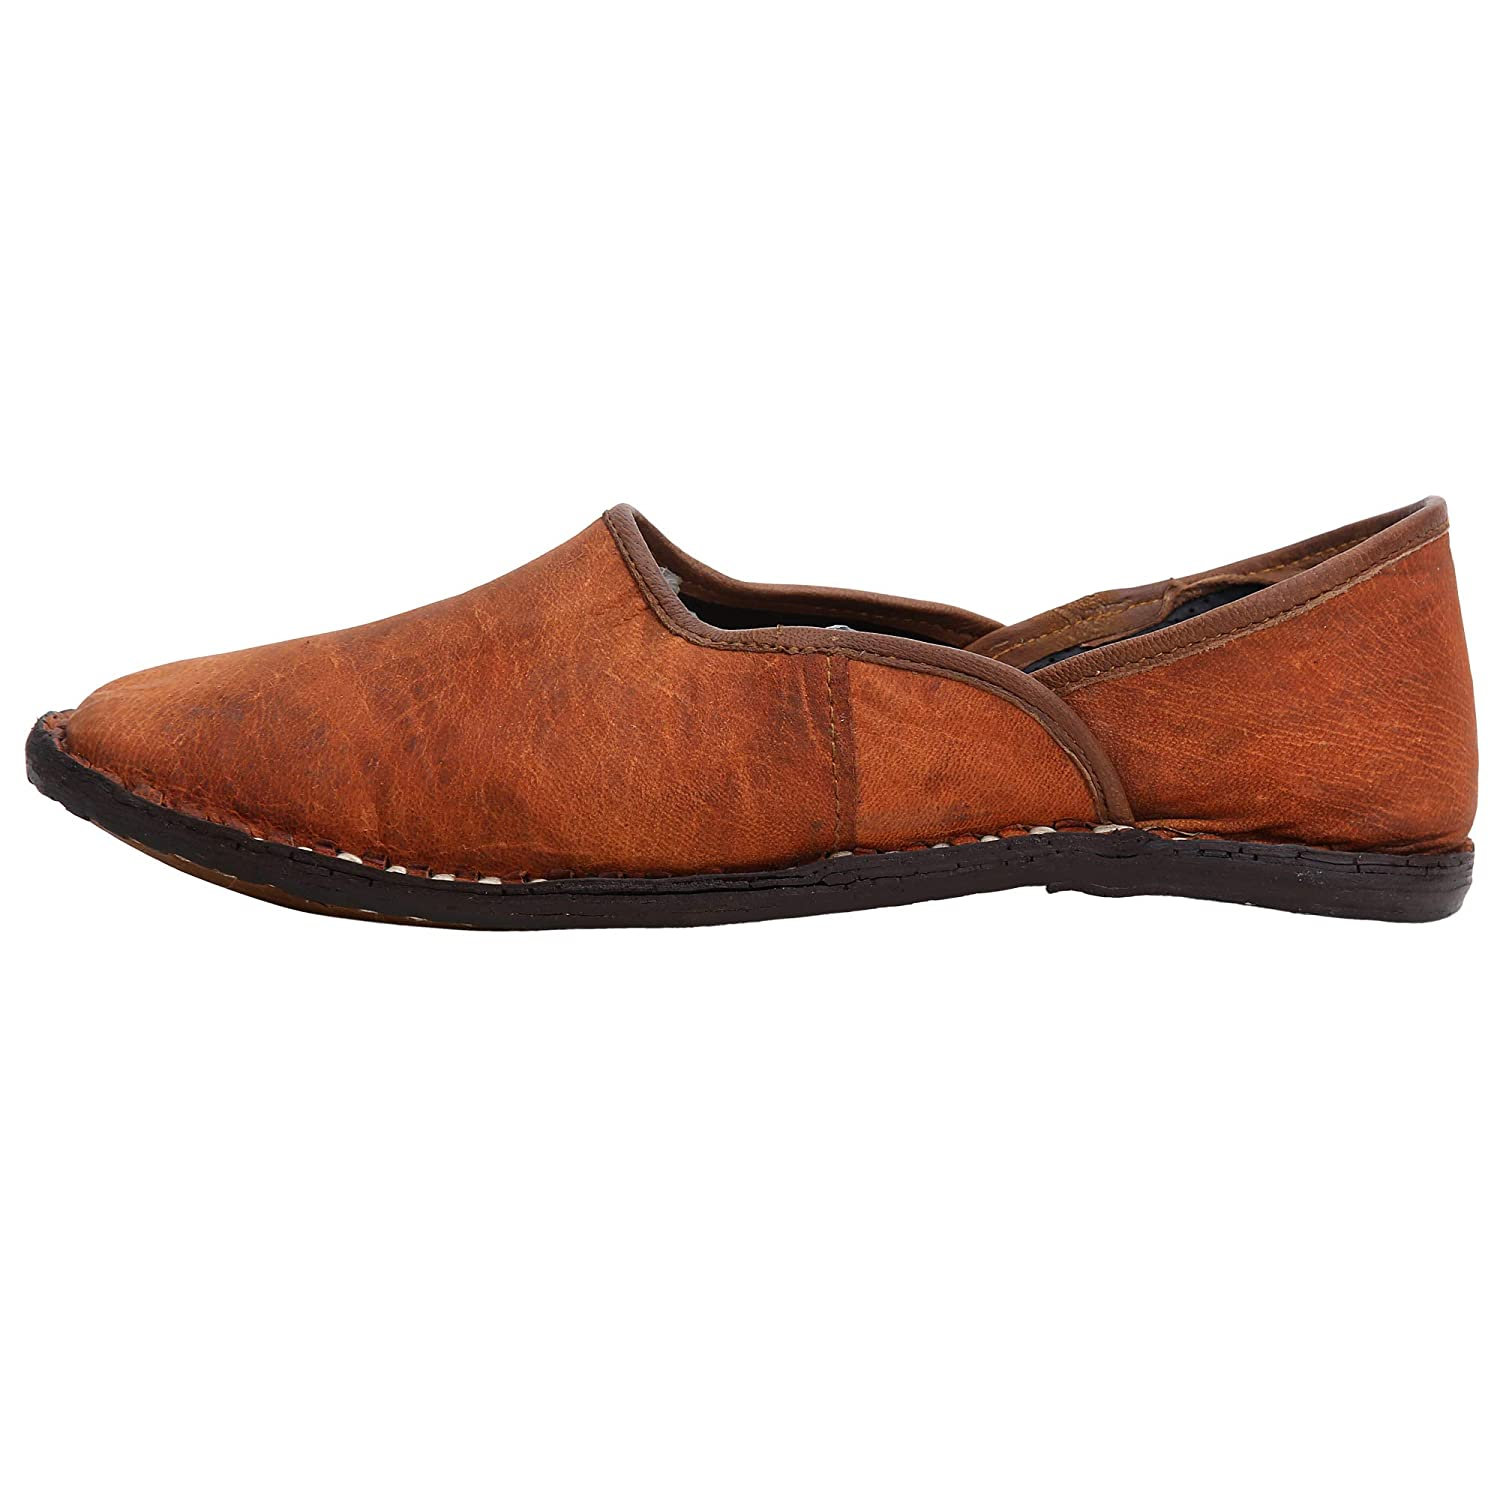 Mens Brown Jutti Shoe Loafer Handmade Indian Leather Classic Shoe